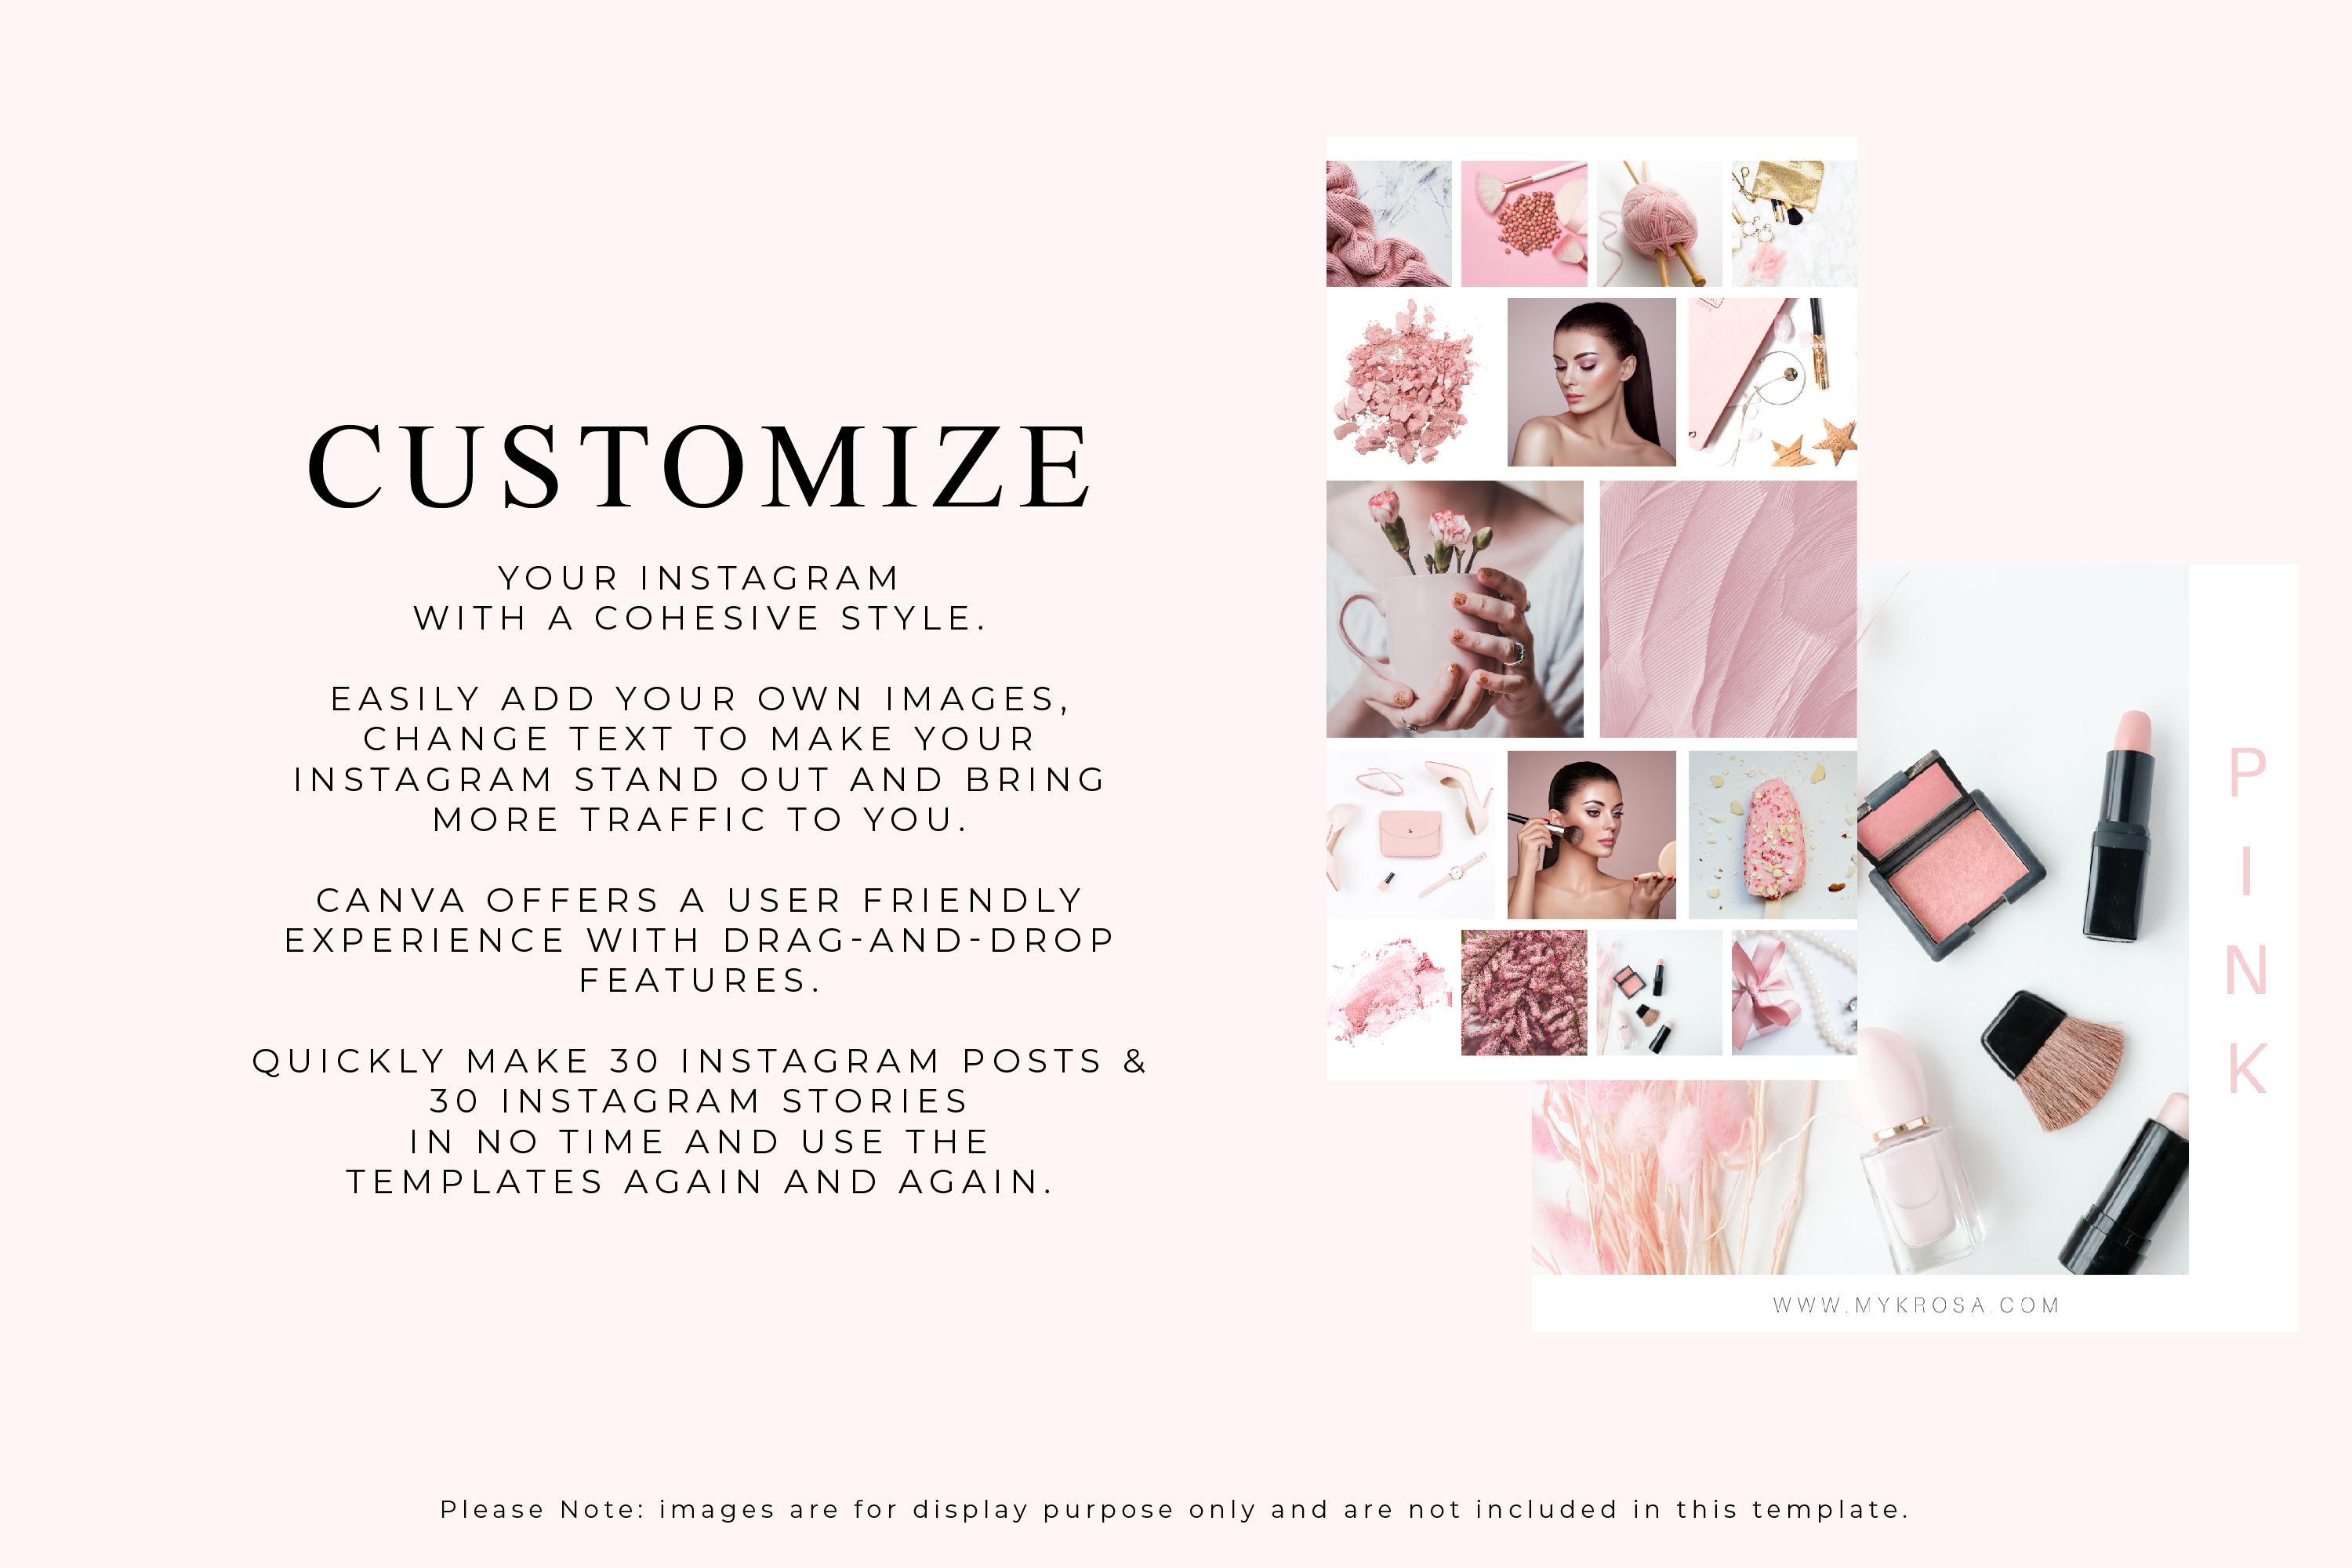 60 Instagram Post & Story Templates For Canva - Myk Rosa example image 3